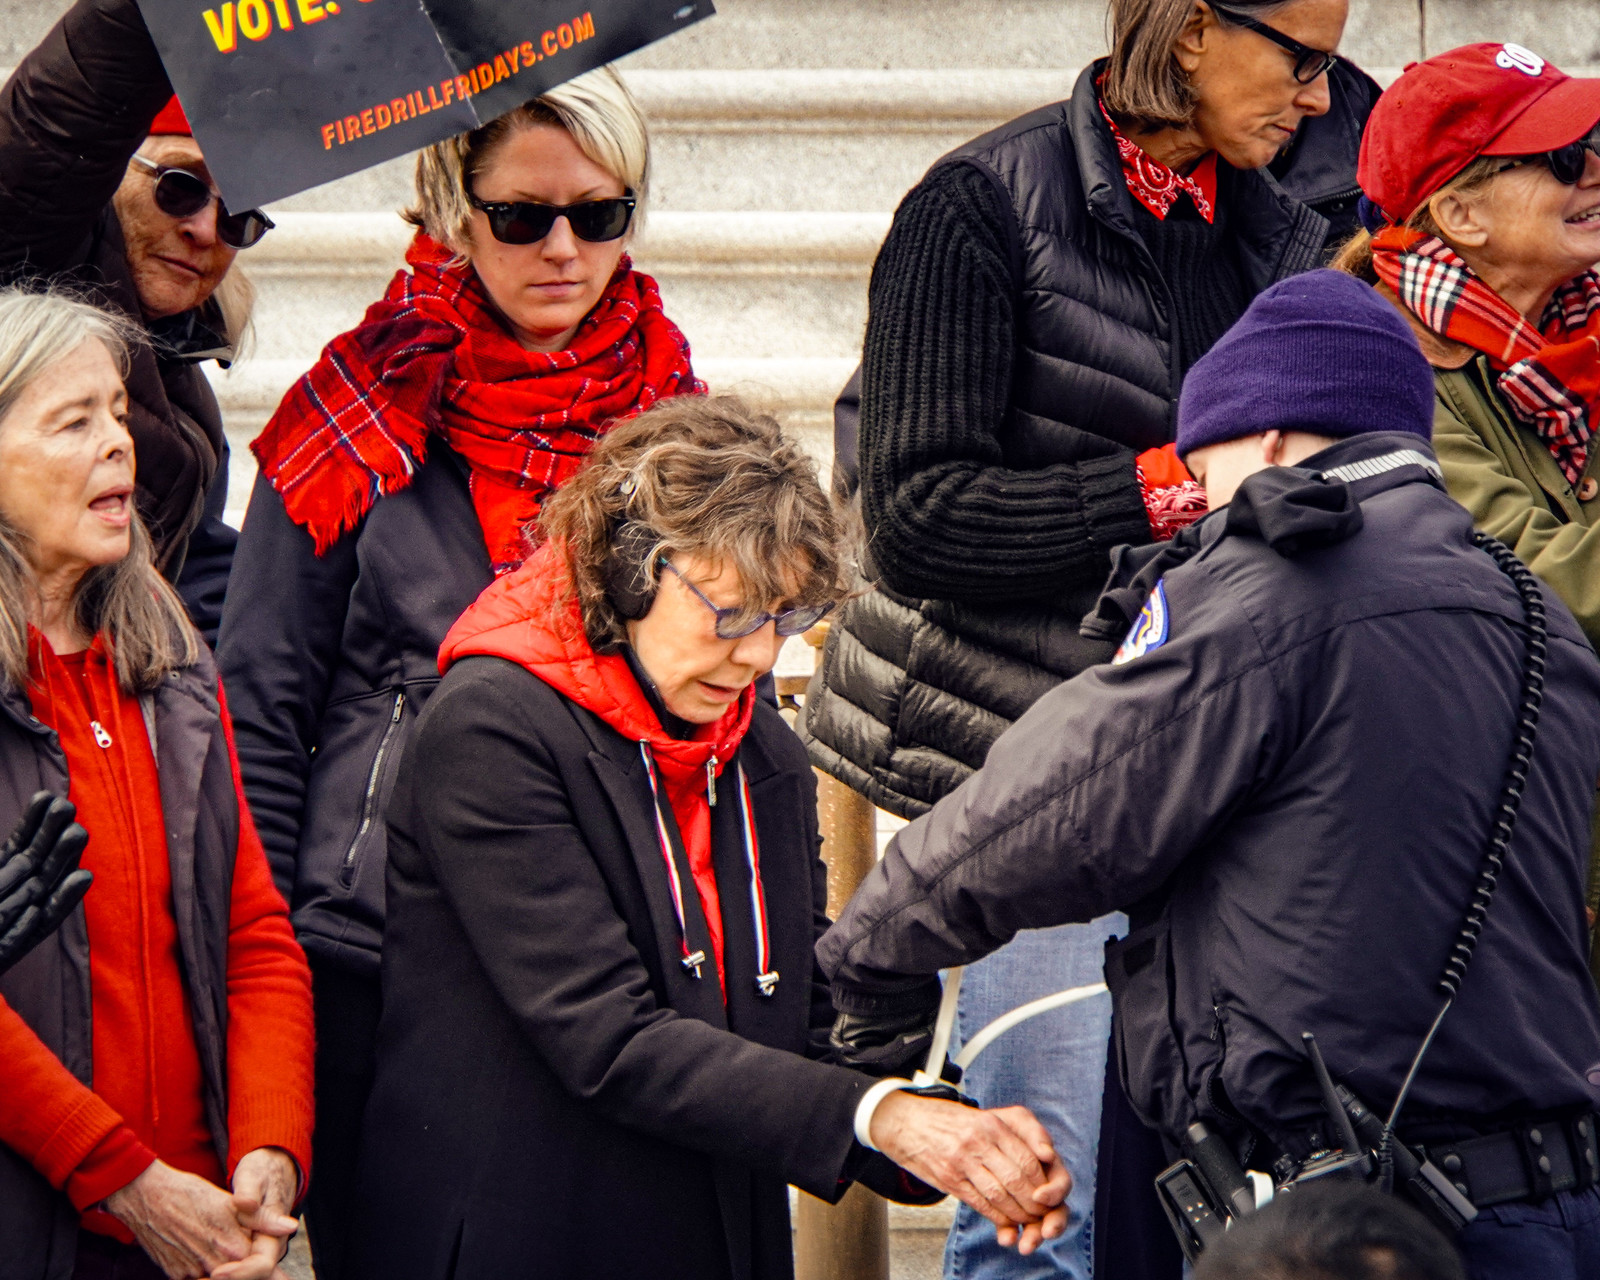 2019.12.27 Fire Drill Fridays with Jane Fonda and Lily Tomlin, Washington, DC USA 361 172169